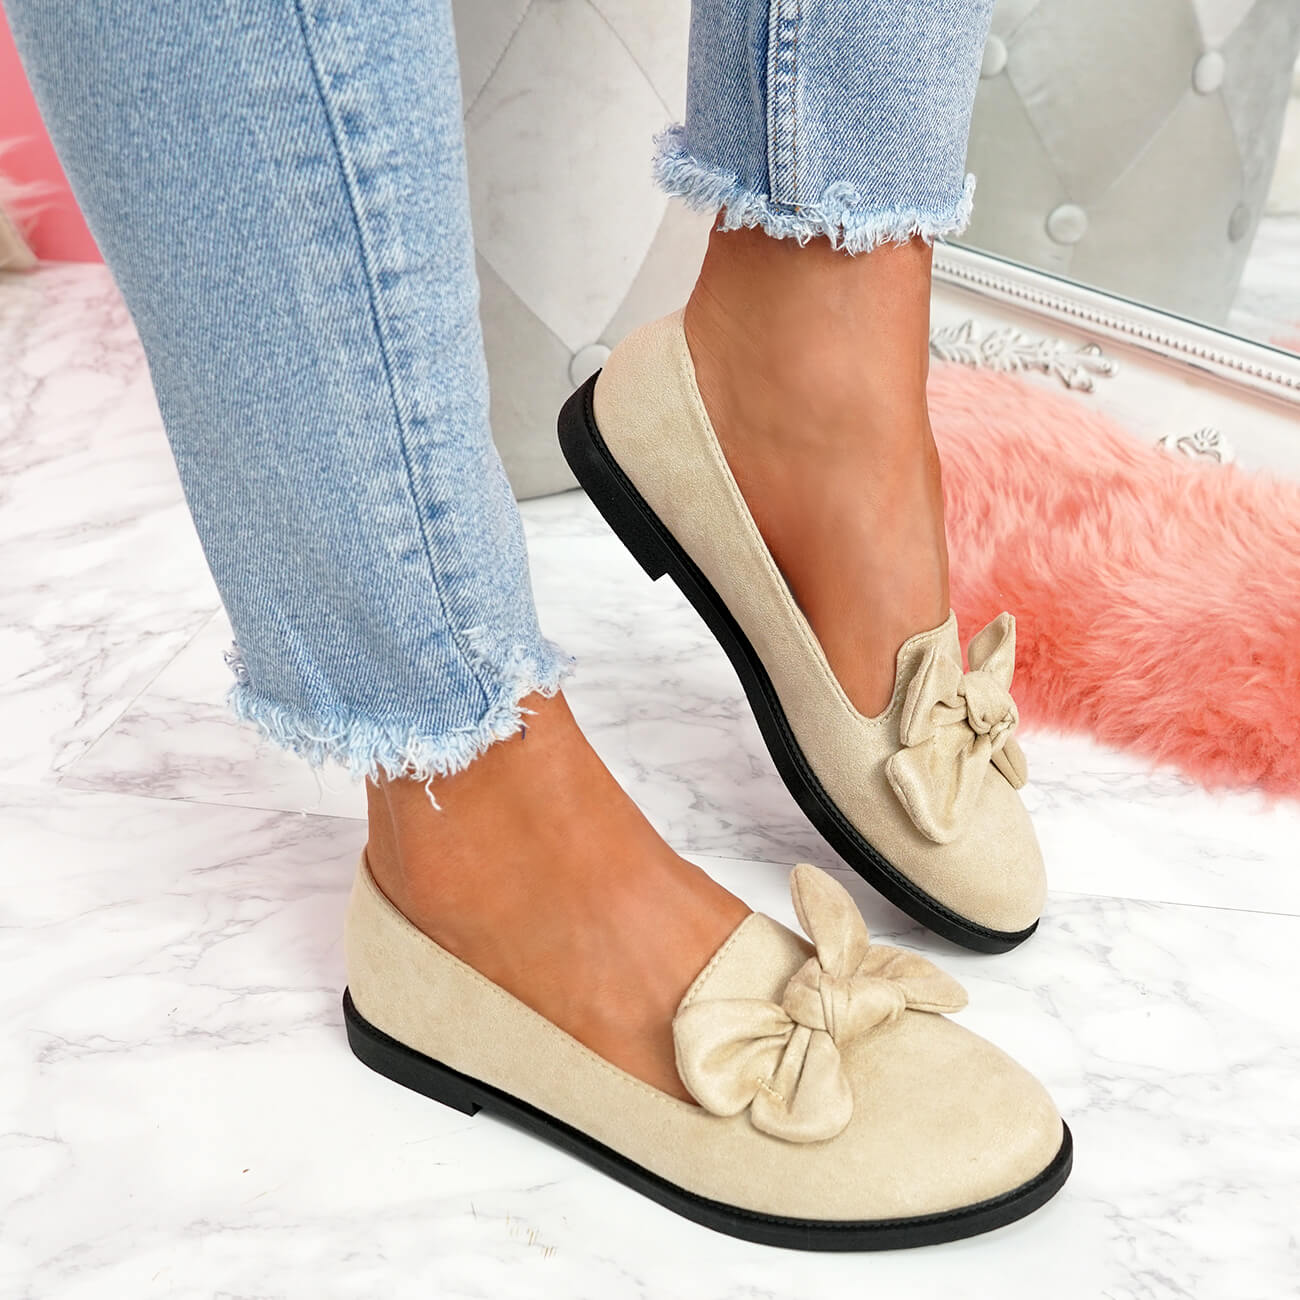 WOMENS-LADIES-BOW-BALLERINA-PUMPS-FLATS-SLIP-ON-BALLET-CASUAL-WORK-SHOES-SIZE thumbnail 10